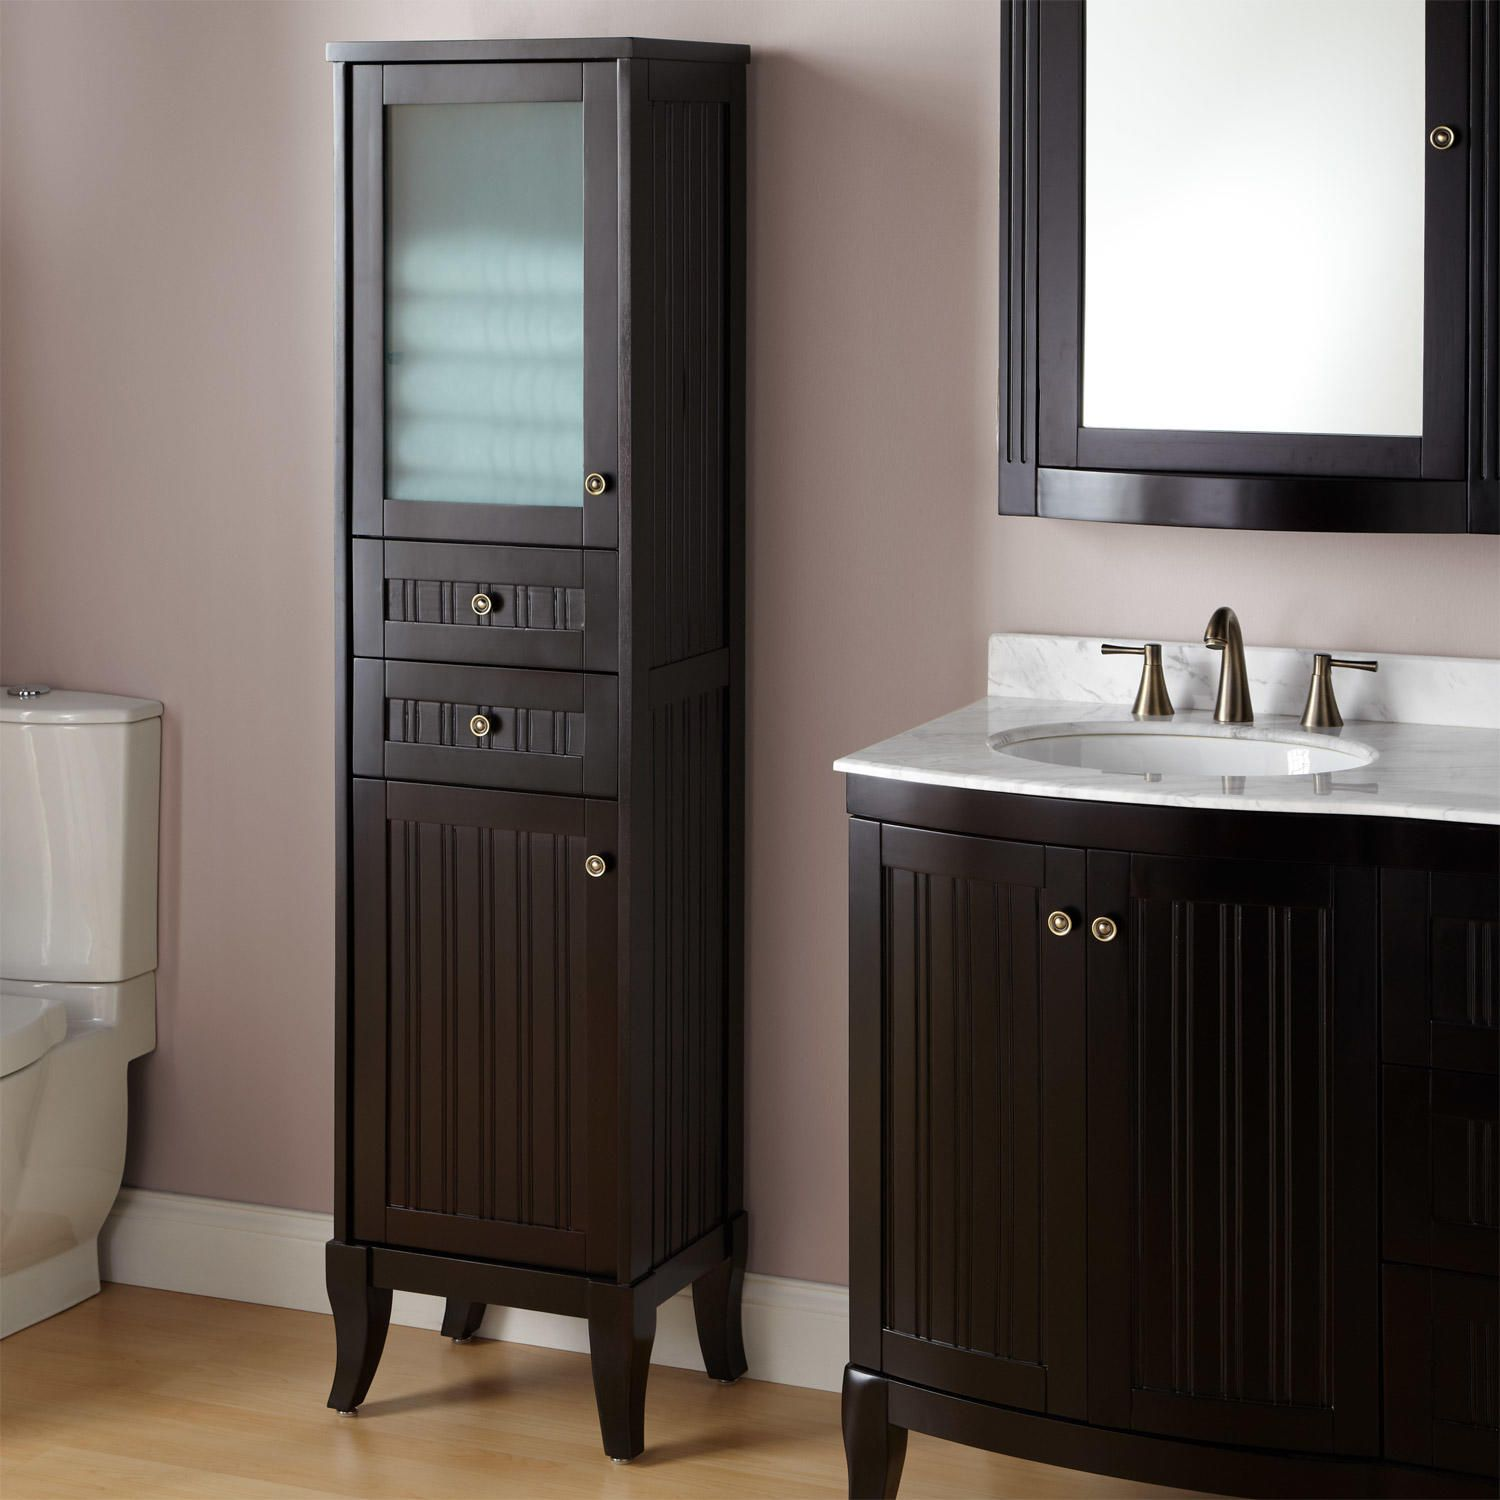 Racks And Drawers For Storage Cabinets For Bathroom For The Win Designalls In 2020 Linen Cabinets Black Bathroom Storage Bathroom Linen Cabinet